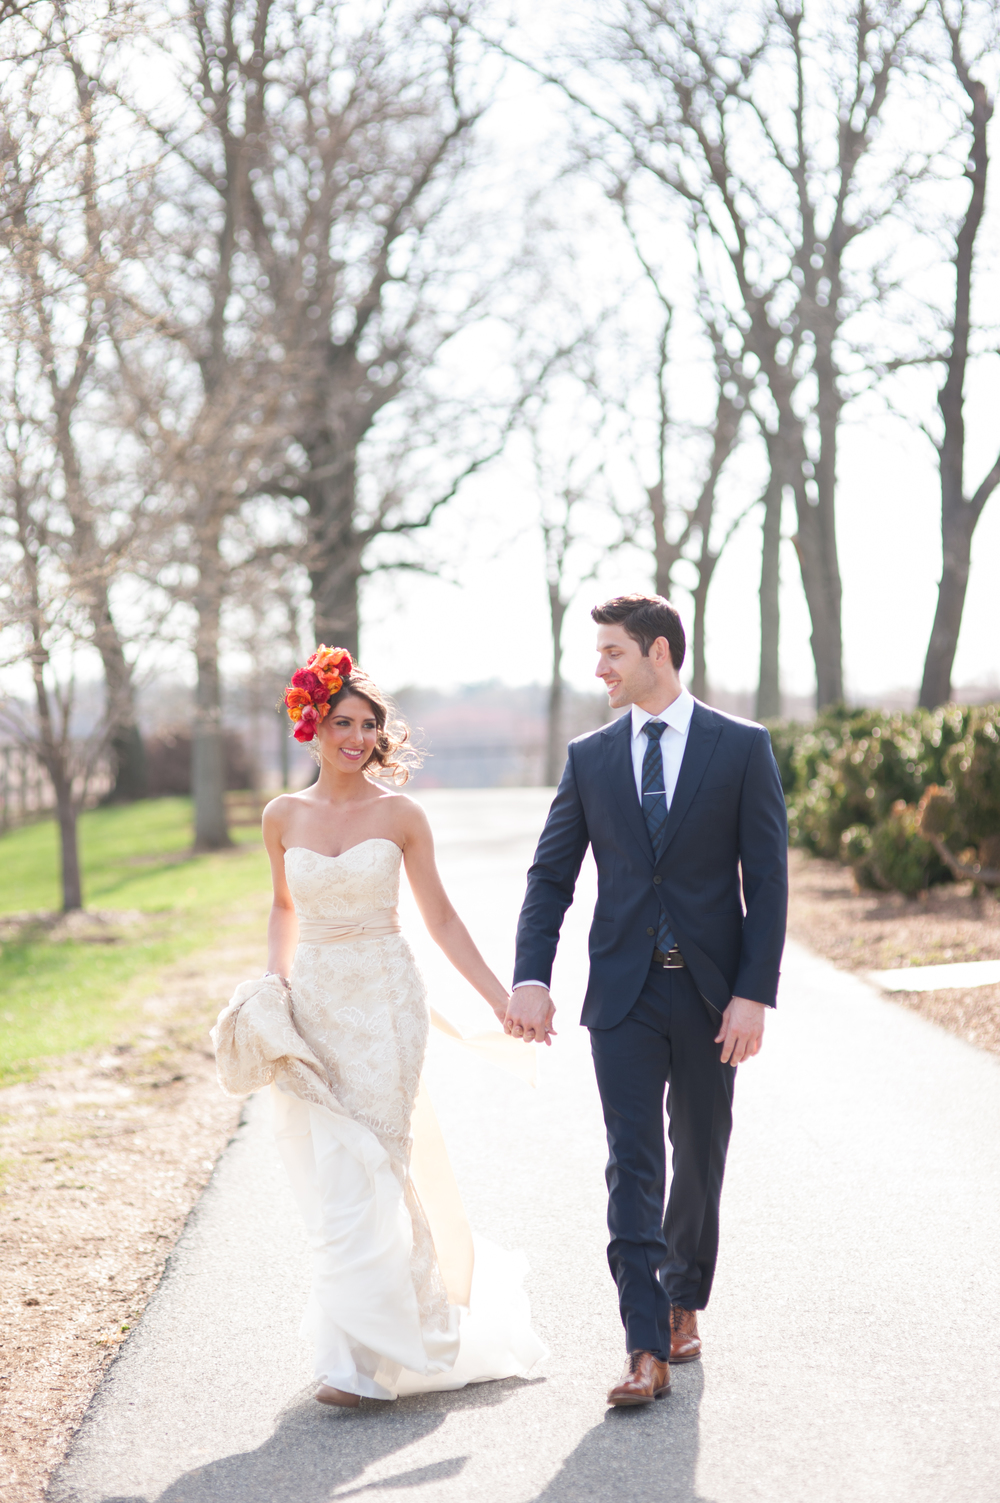 Vibrant Romantic Dutch Wedding at Woodlawn Manor-46.jpg